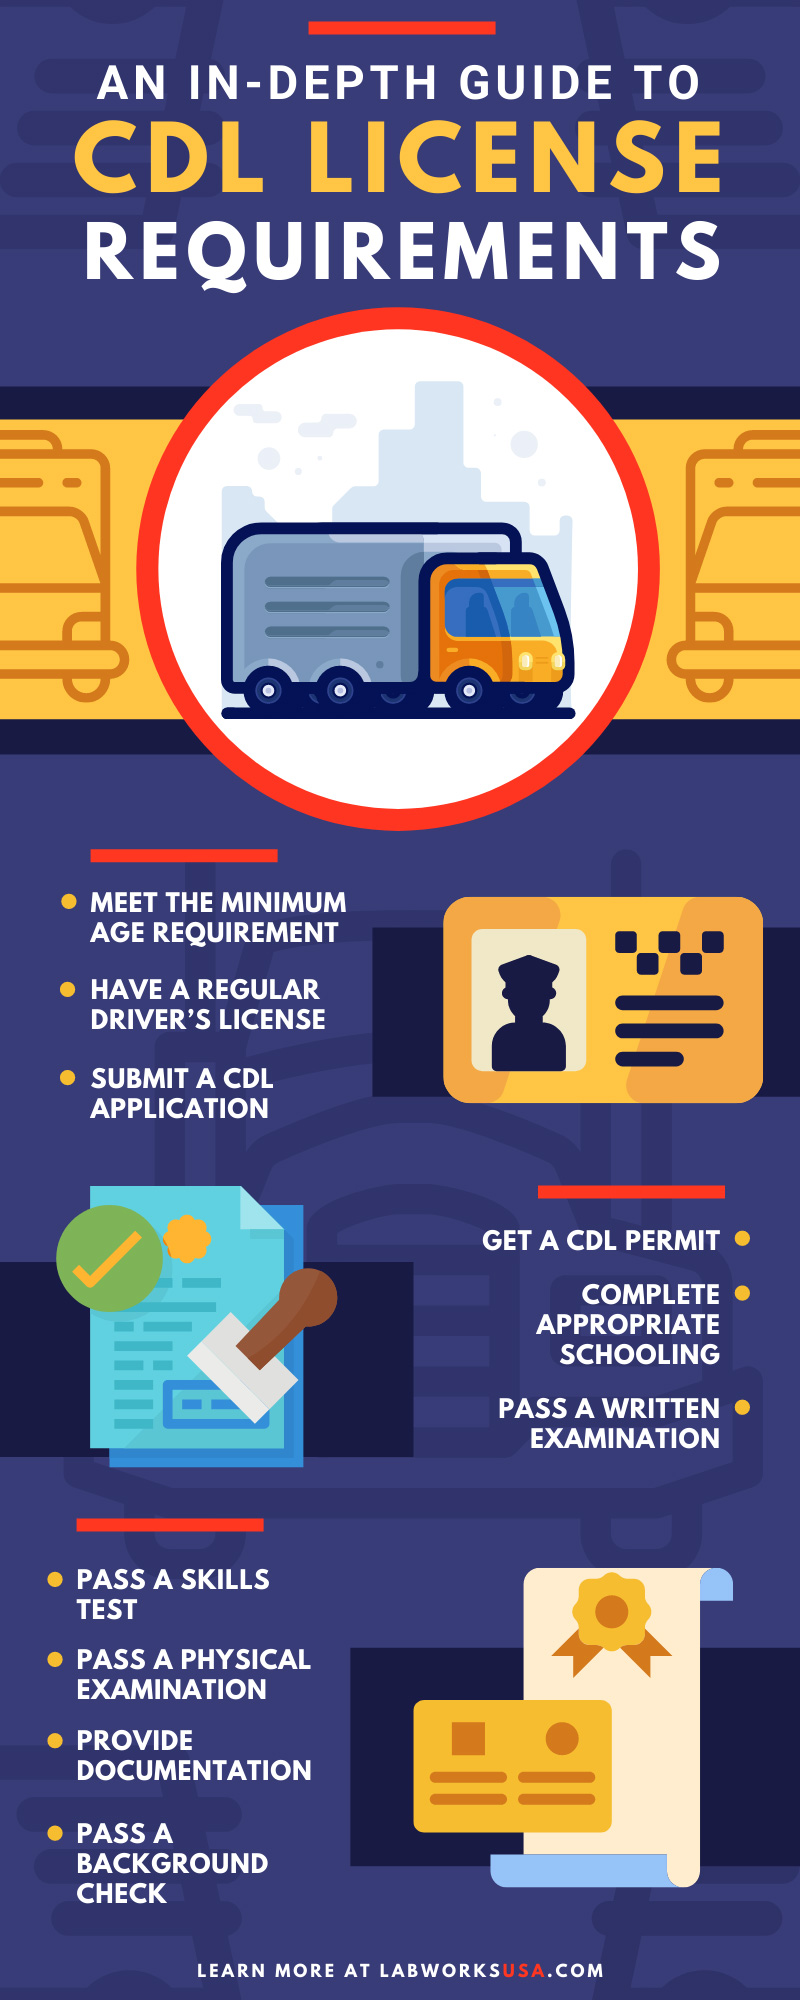 An In-Depth Guide To CDL License Requirements